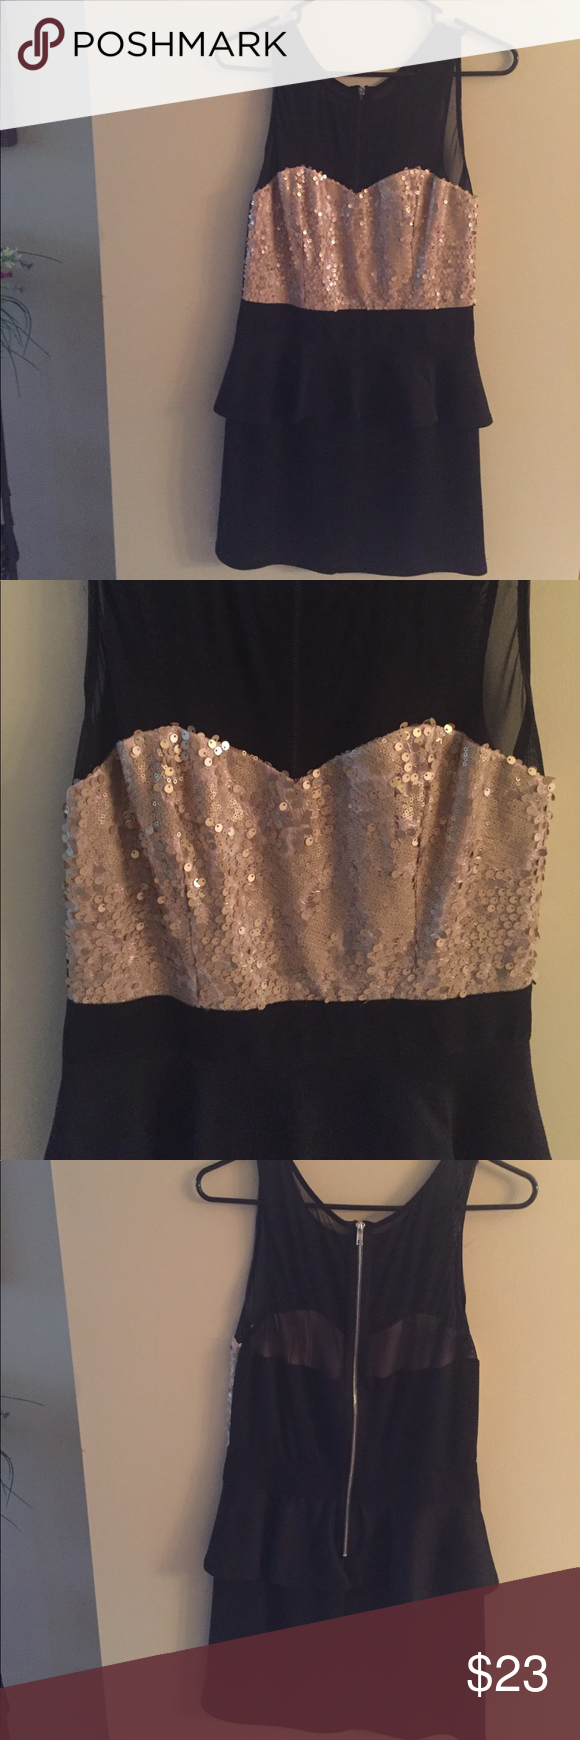 Black and gold dress so cute Black and gold cute for a wedding or party Speechless Dresses Mini